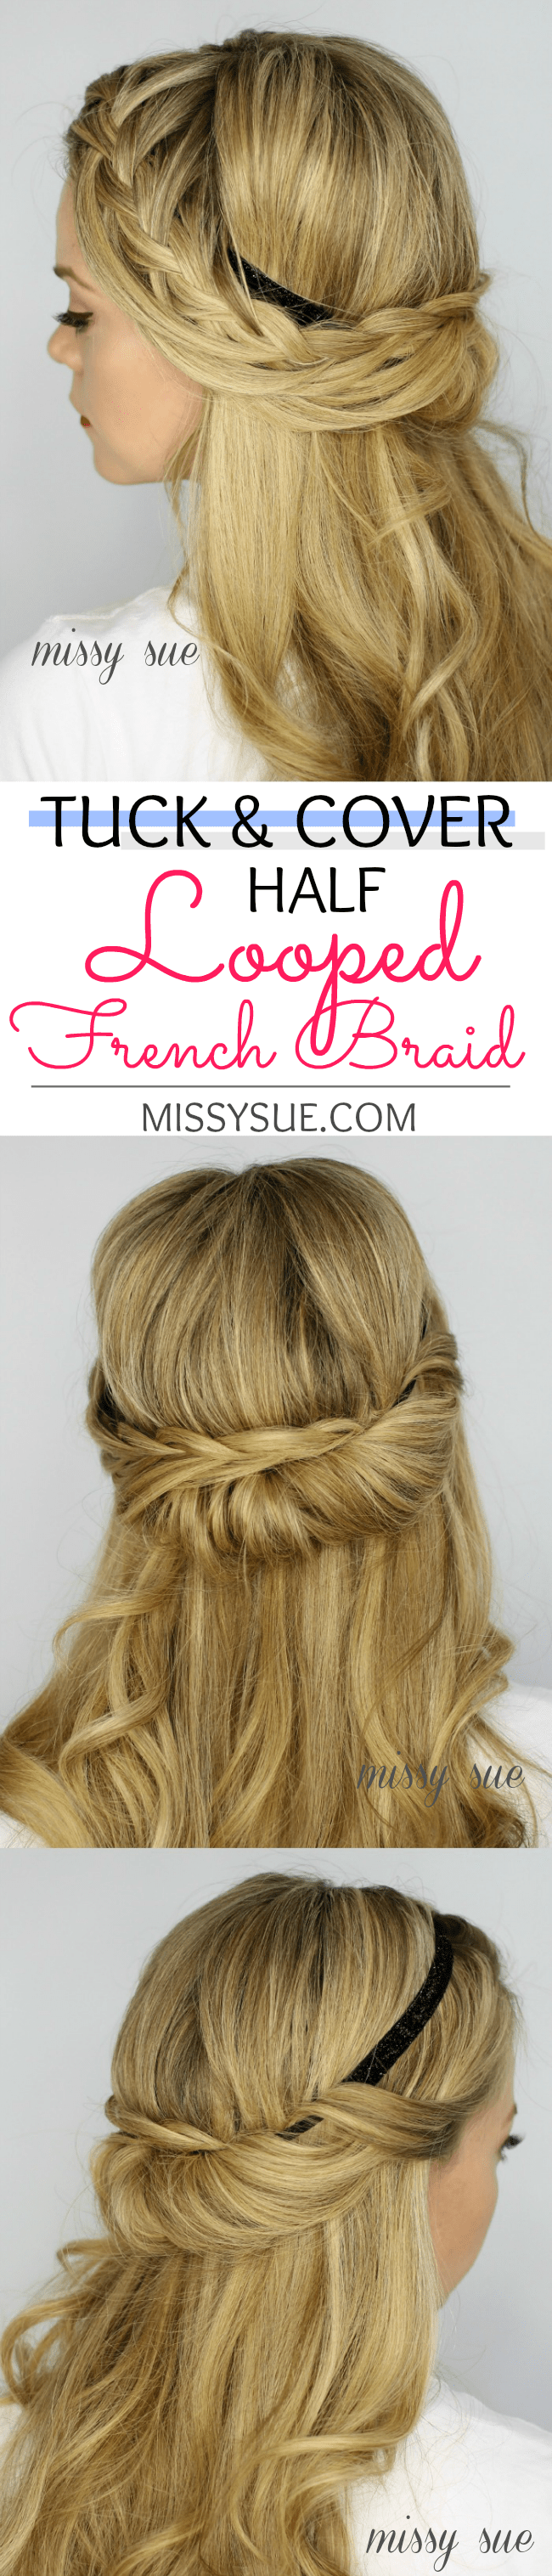 tuck and cover half looped french braid Tuck and Cover Half Looped French Braid